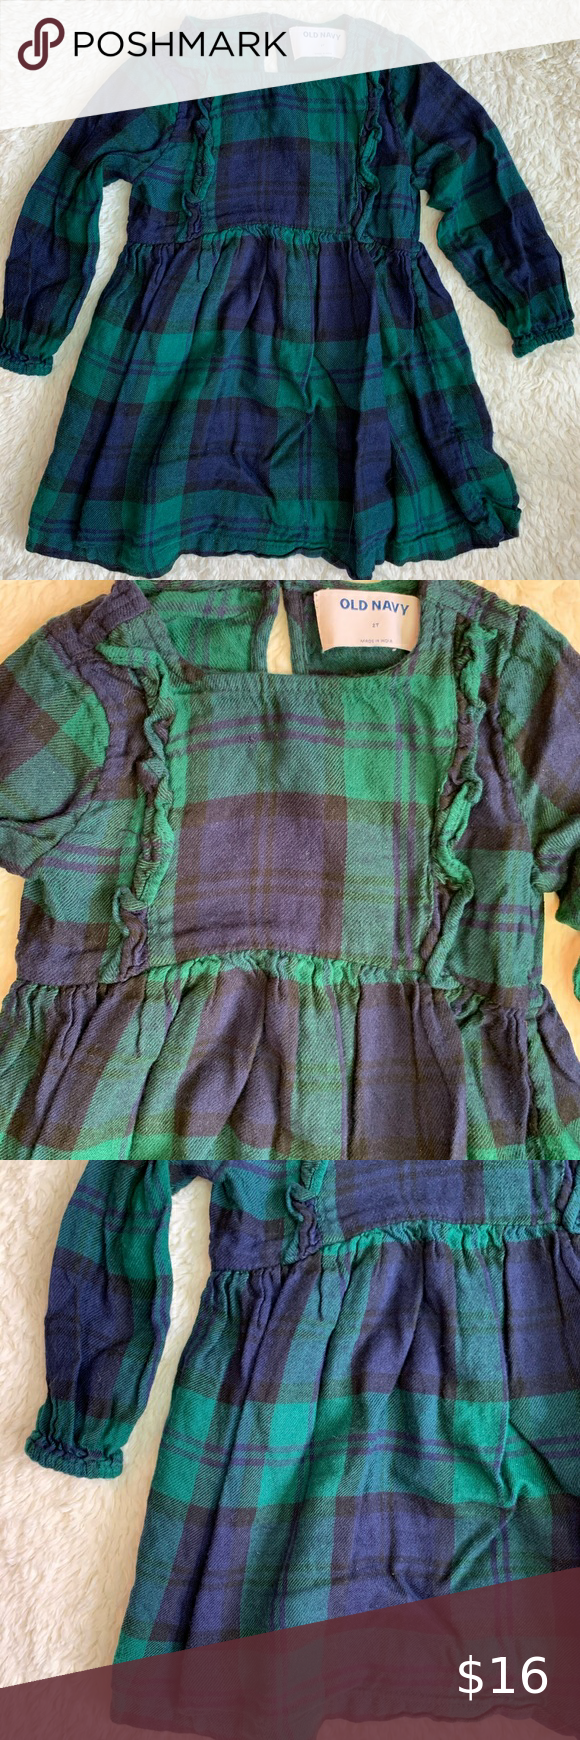 Navy Blue And Green Plaid Dress From Old Navy Green Plaid Dress Plaid Dress Green Plaid [ 1740 x 580 Pixel ]